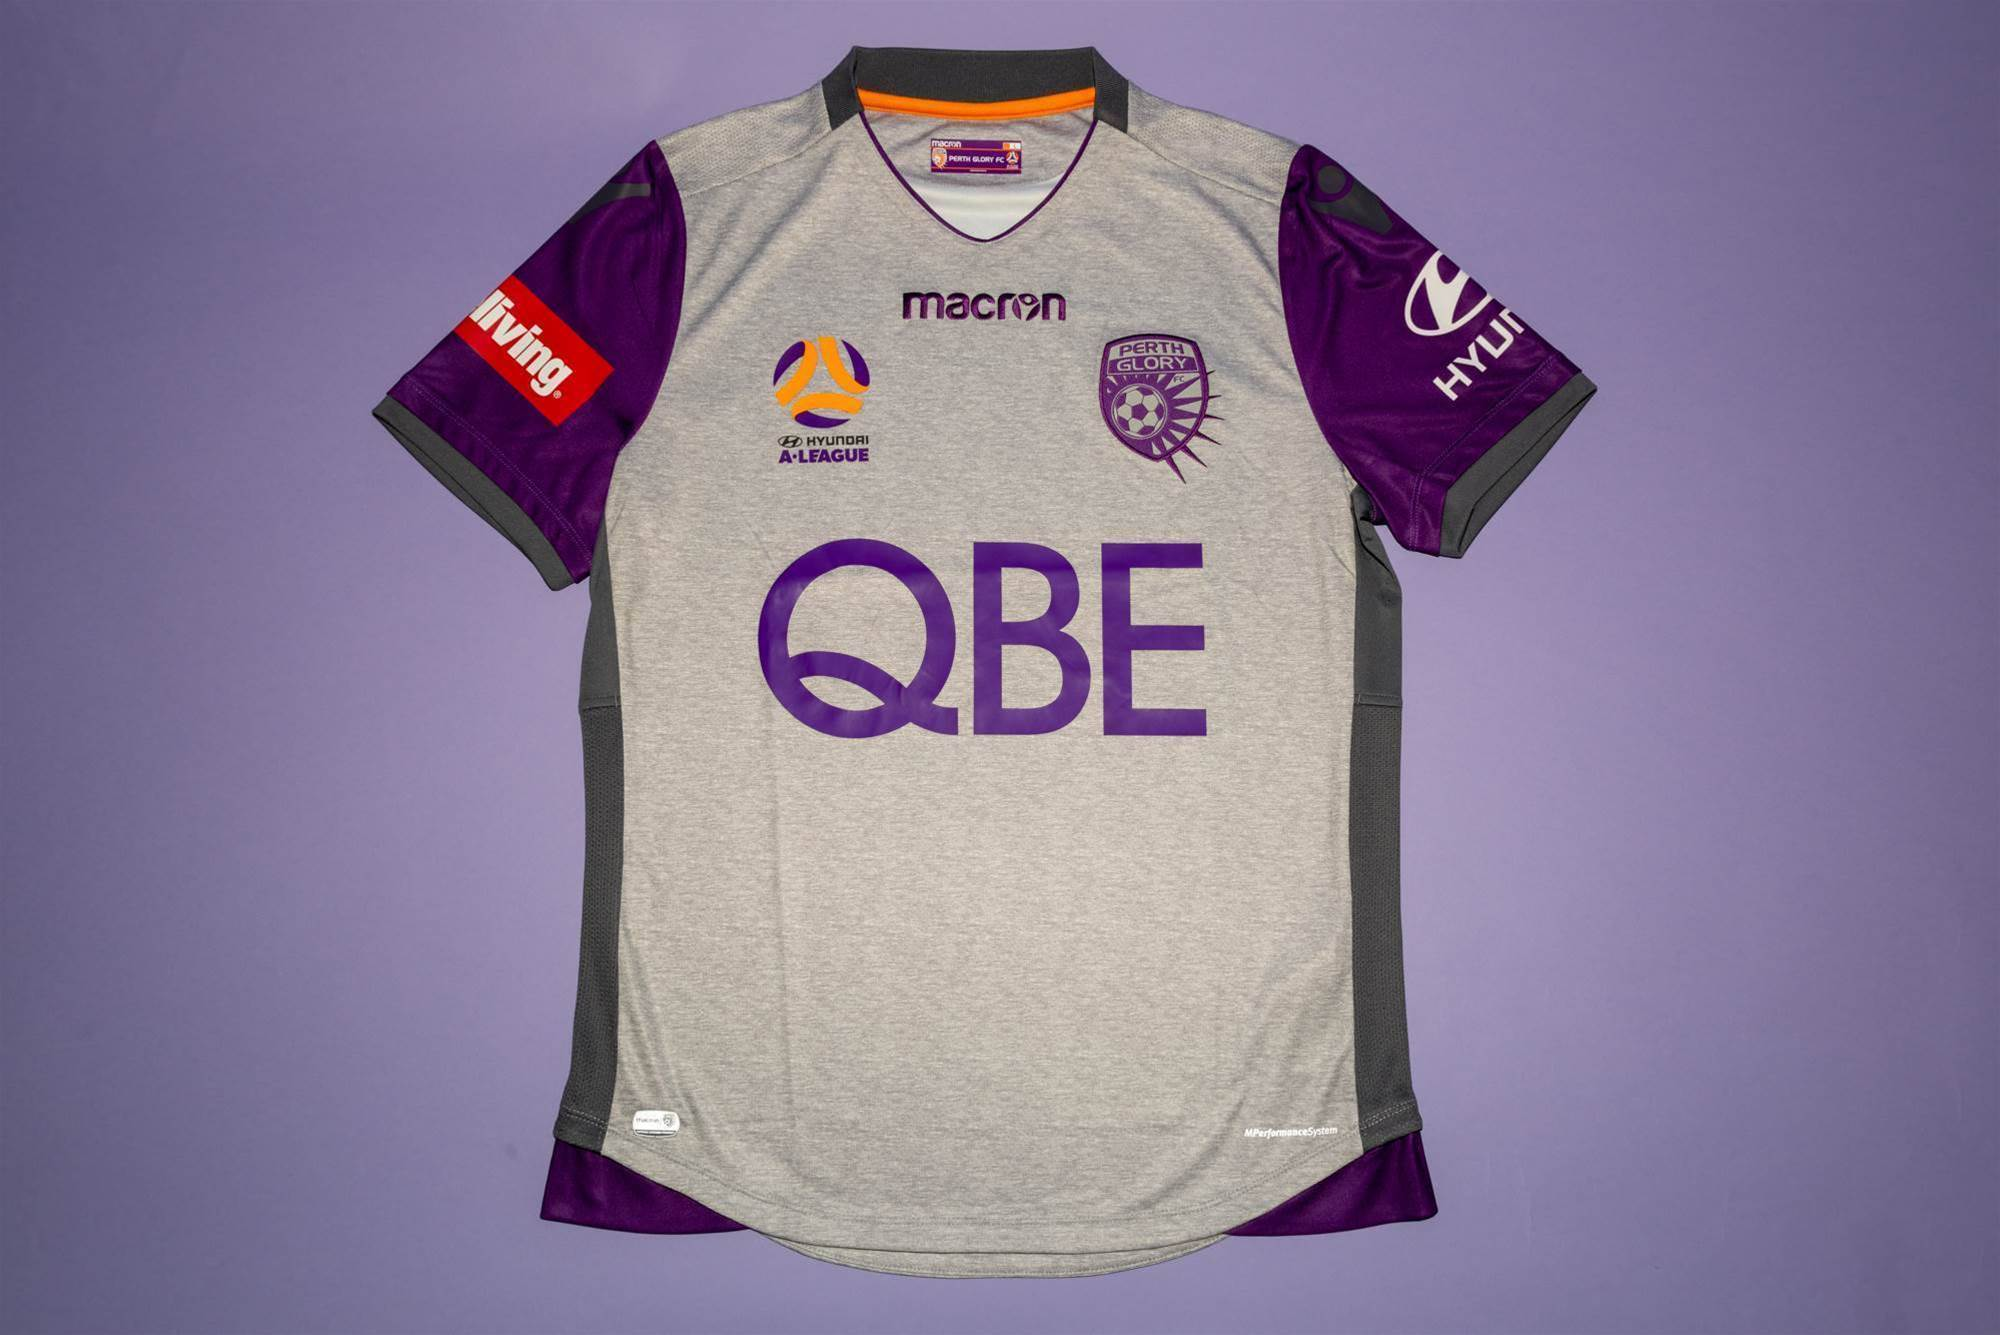 FTBL were given the chance to have an exclusive sneak peek at the new jersey  which will debut on pitch for the first time when the Glory take on Premier  ... 5d7dddadc